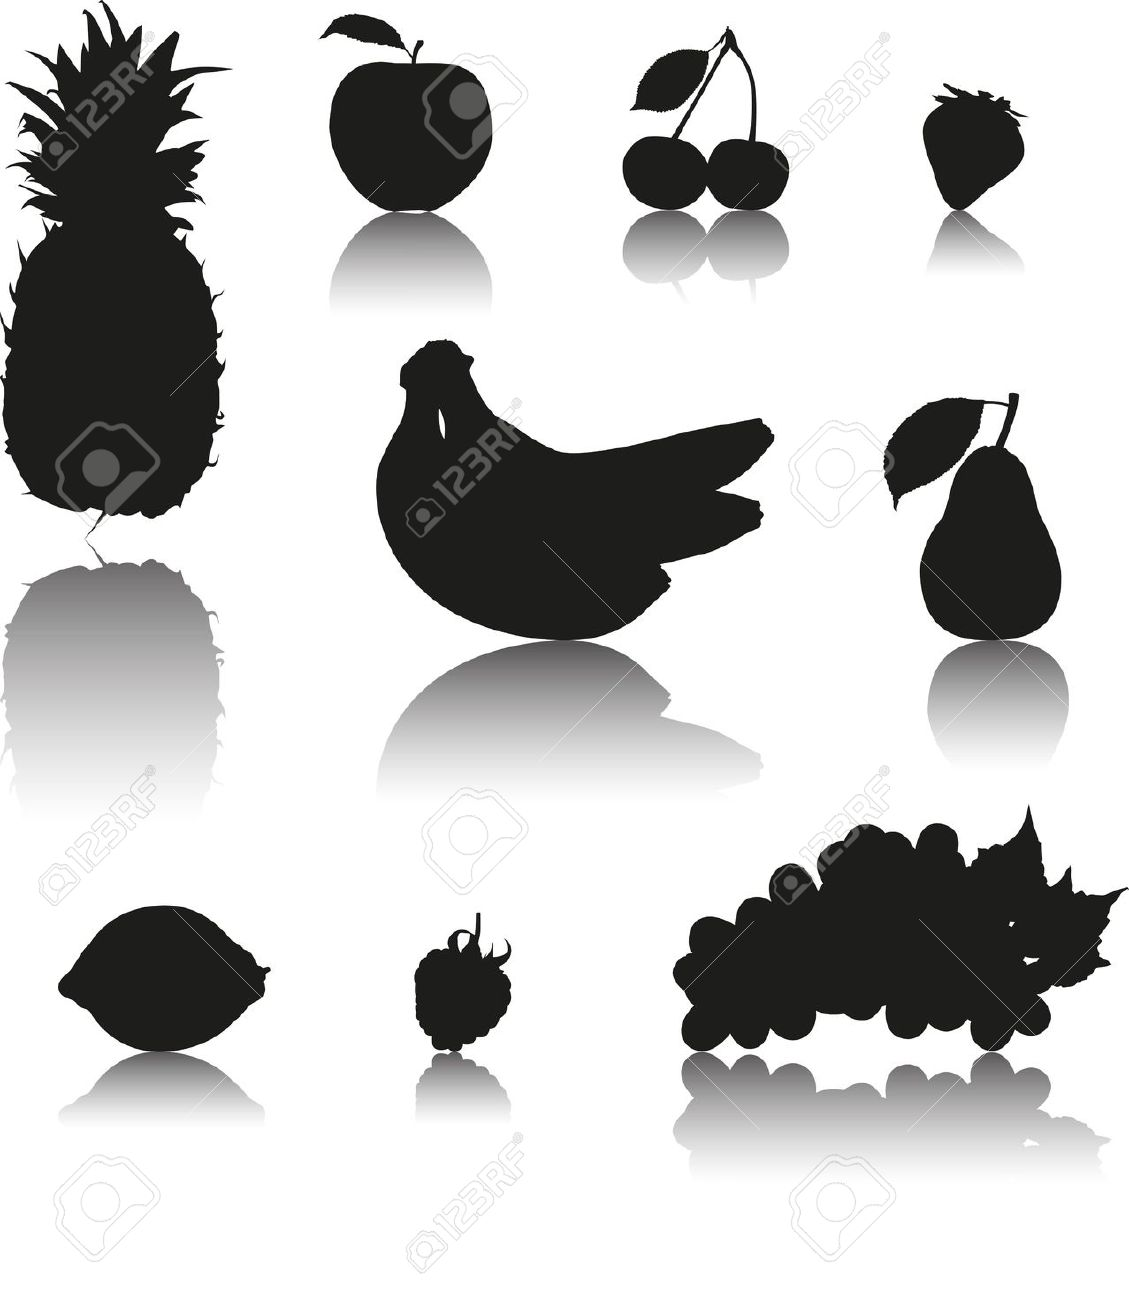 Shadow clipart fruit #9